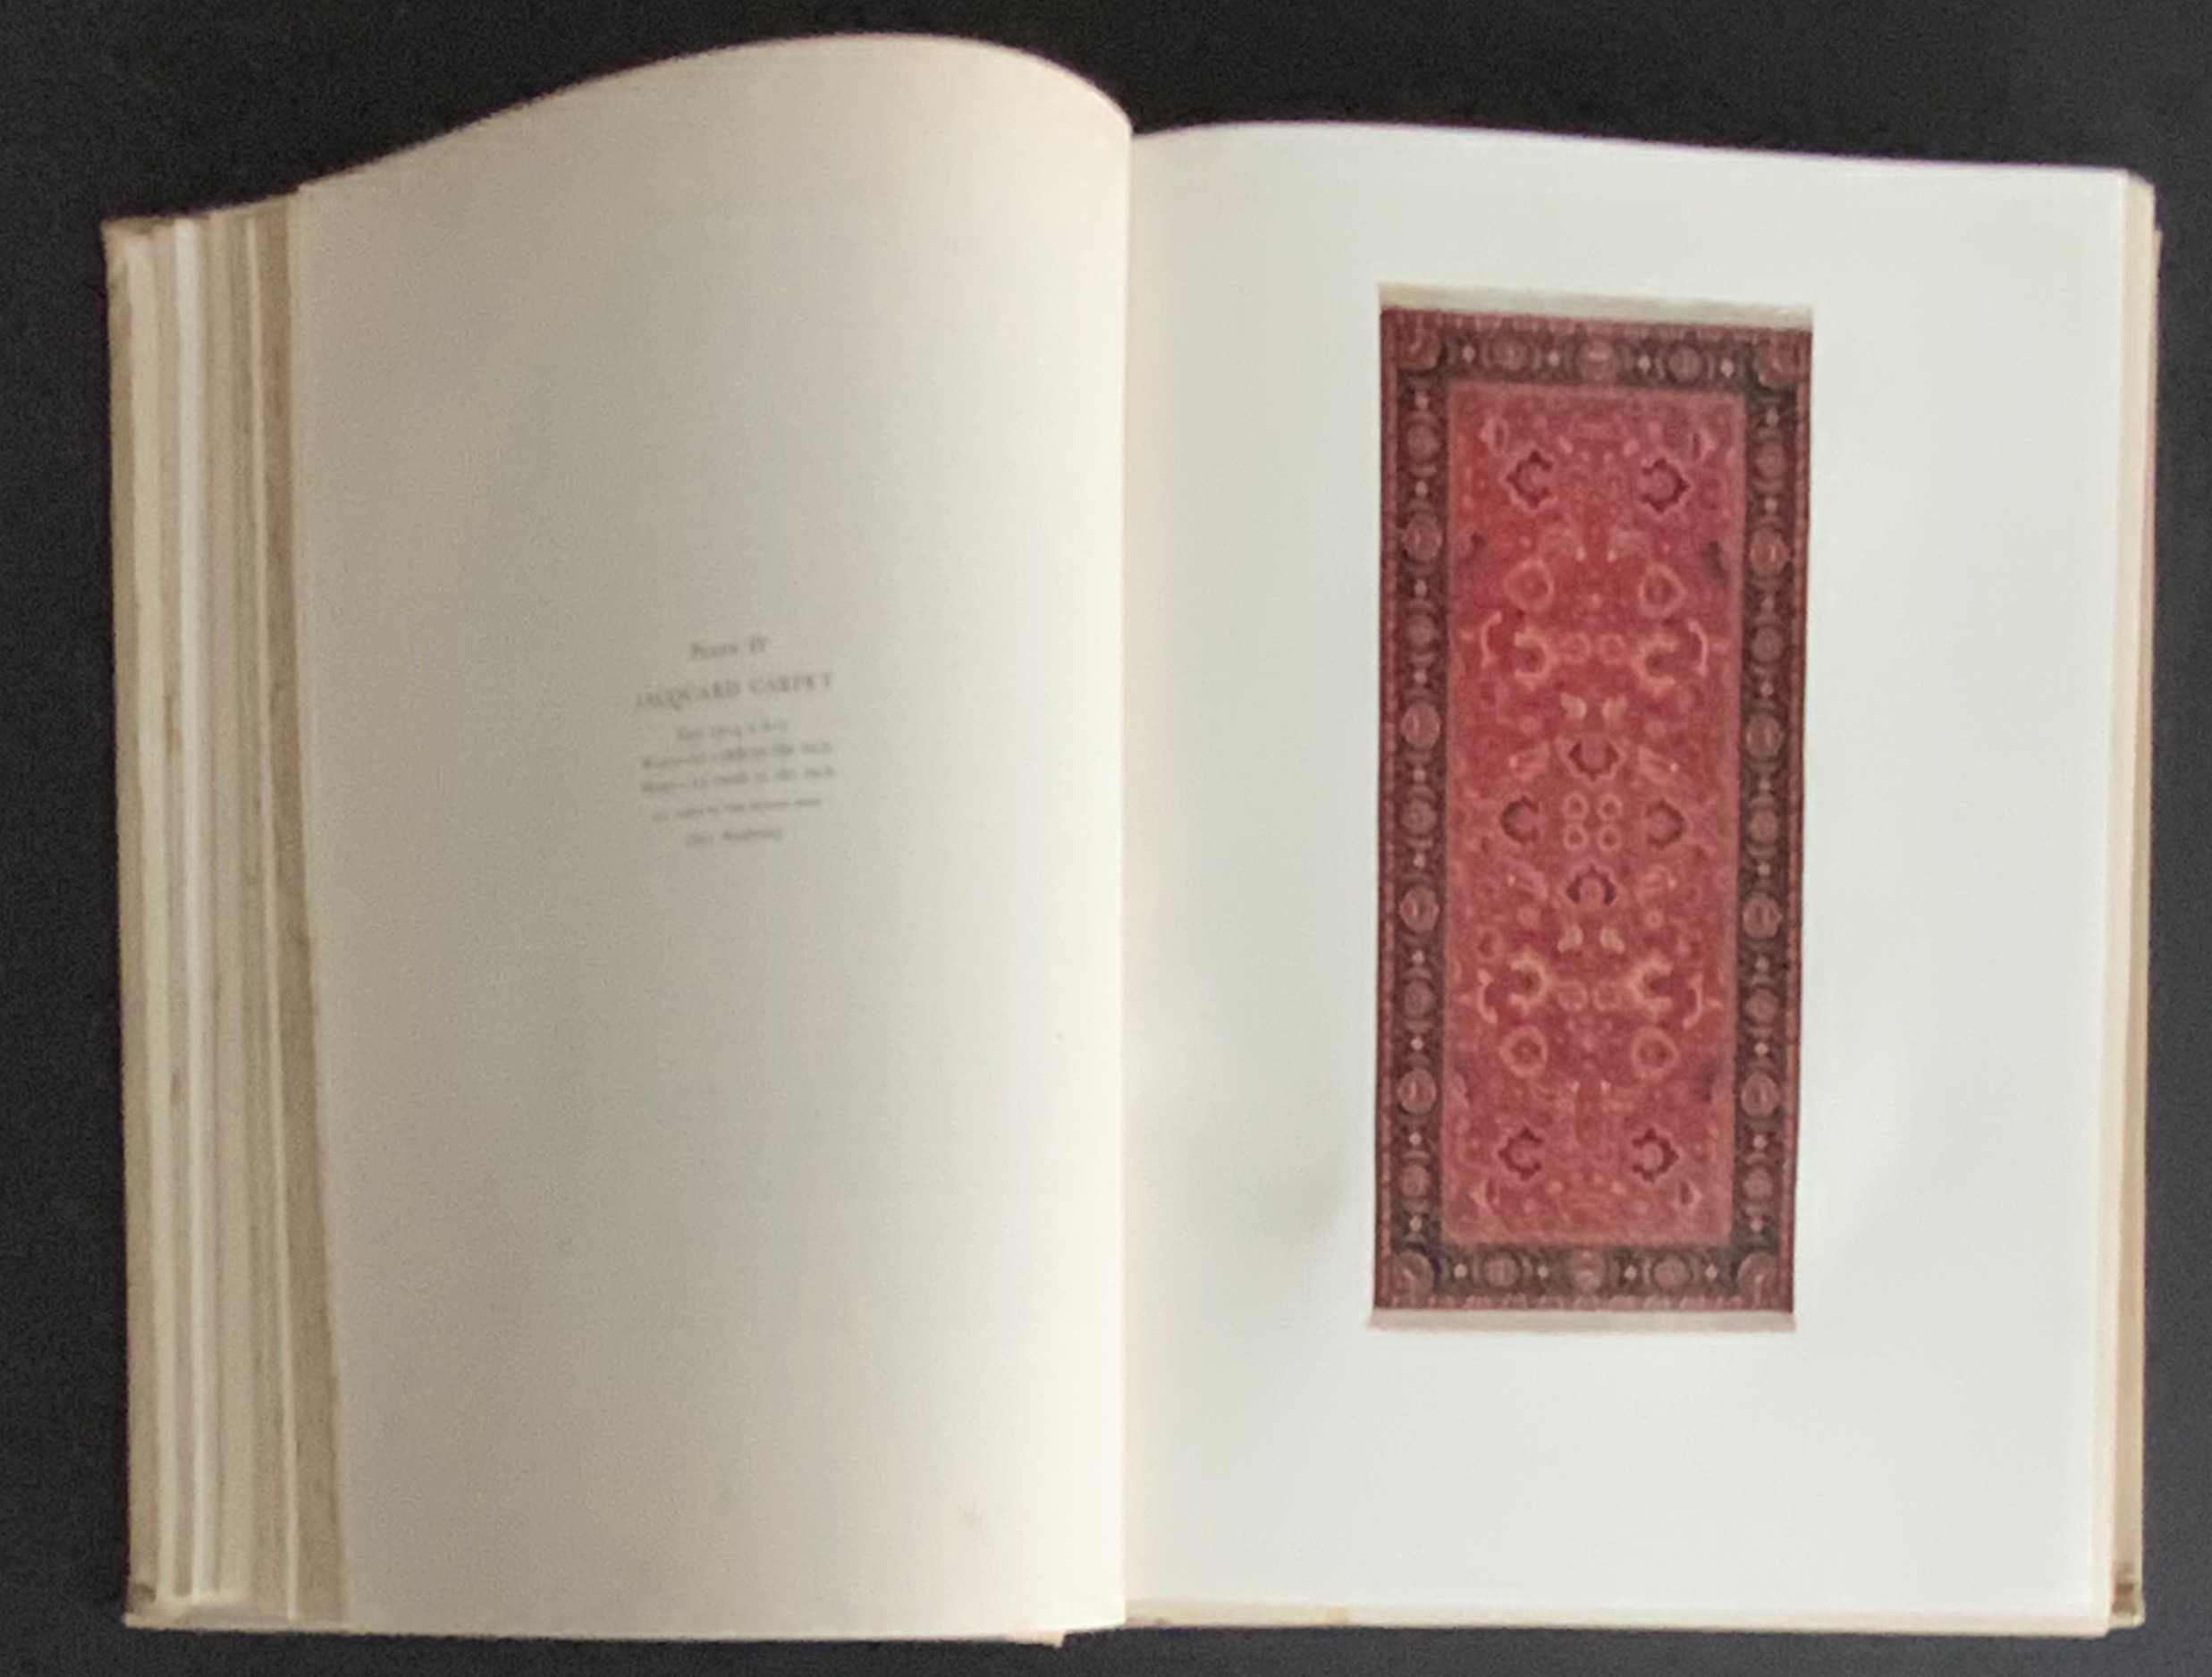 ORIENTAL CARPETS RUNNERS & RUGS AND SOME JACQUARD REPRODUCTIONS 1910 - Image 6 of 12